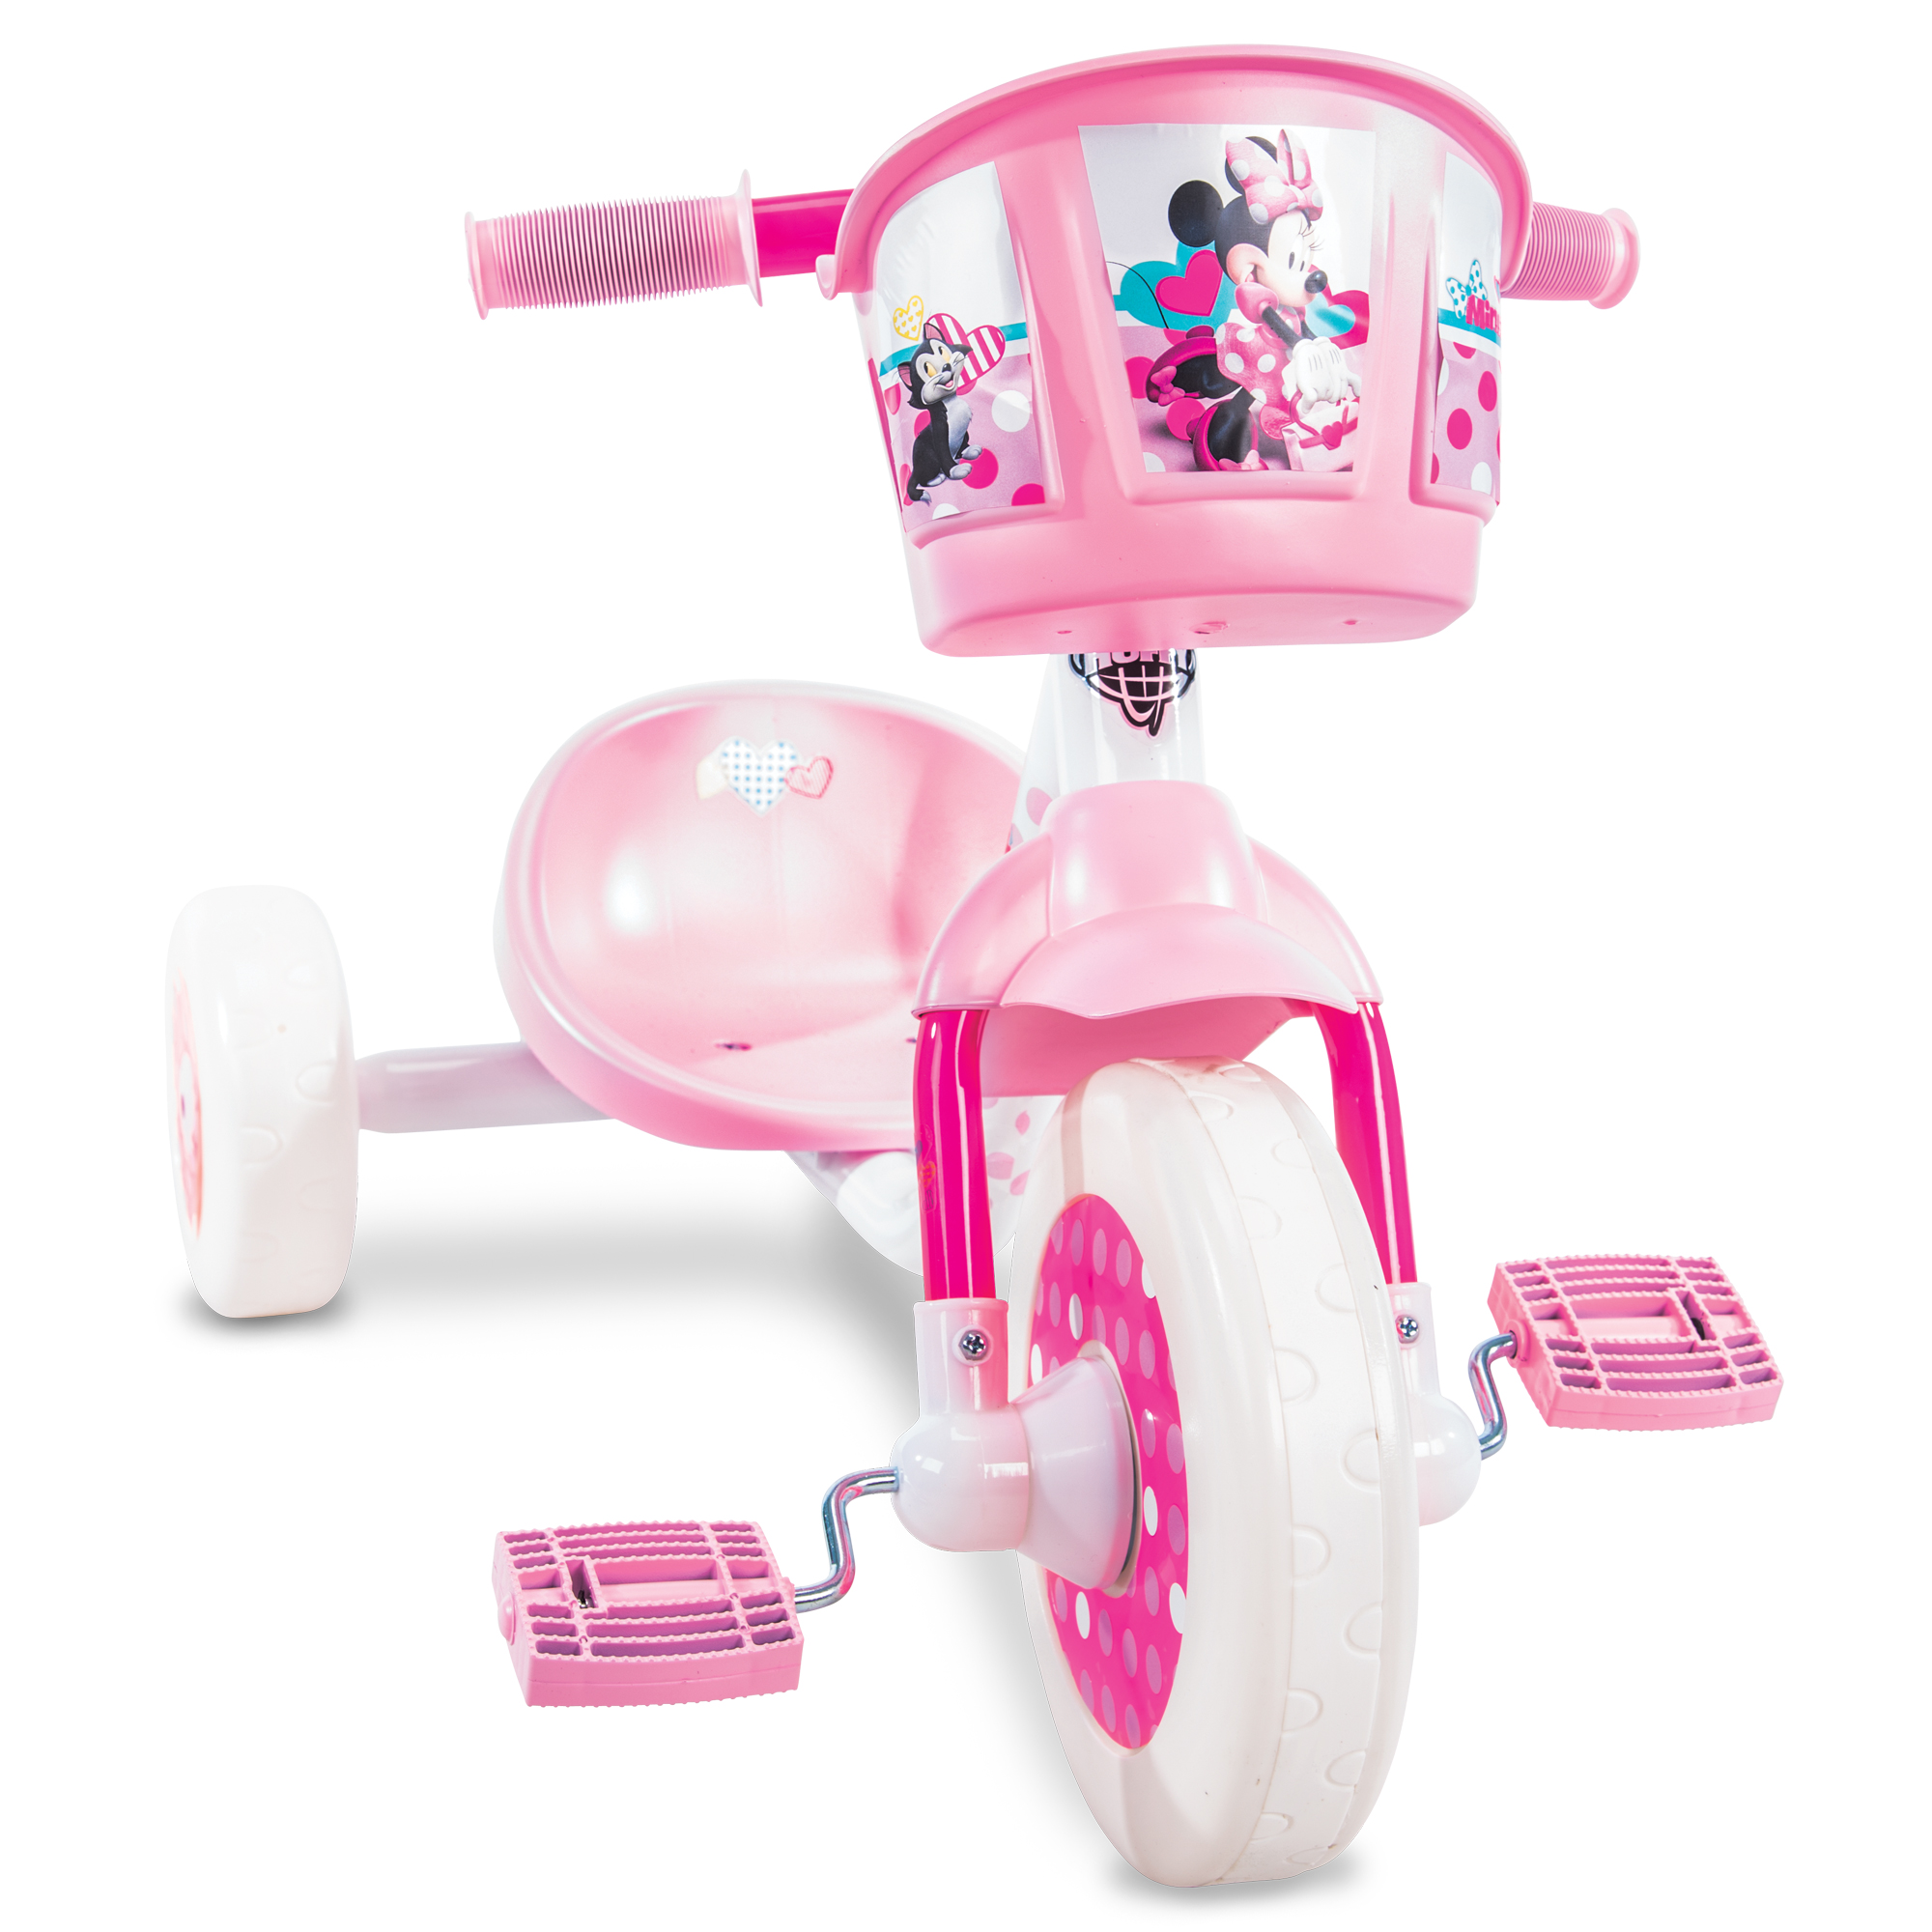 Disney Minnie Girls' 3-Wheel Preschool Pink Tricycle by Huffy  by Huffy